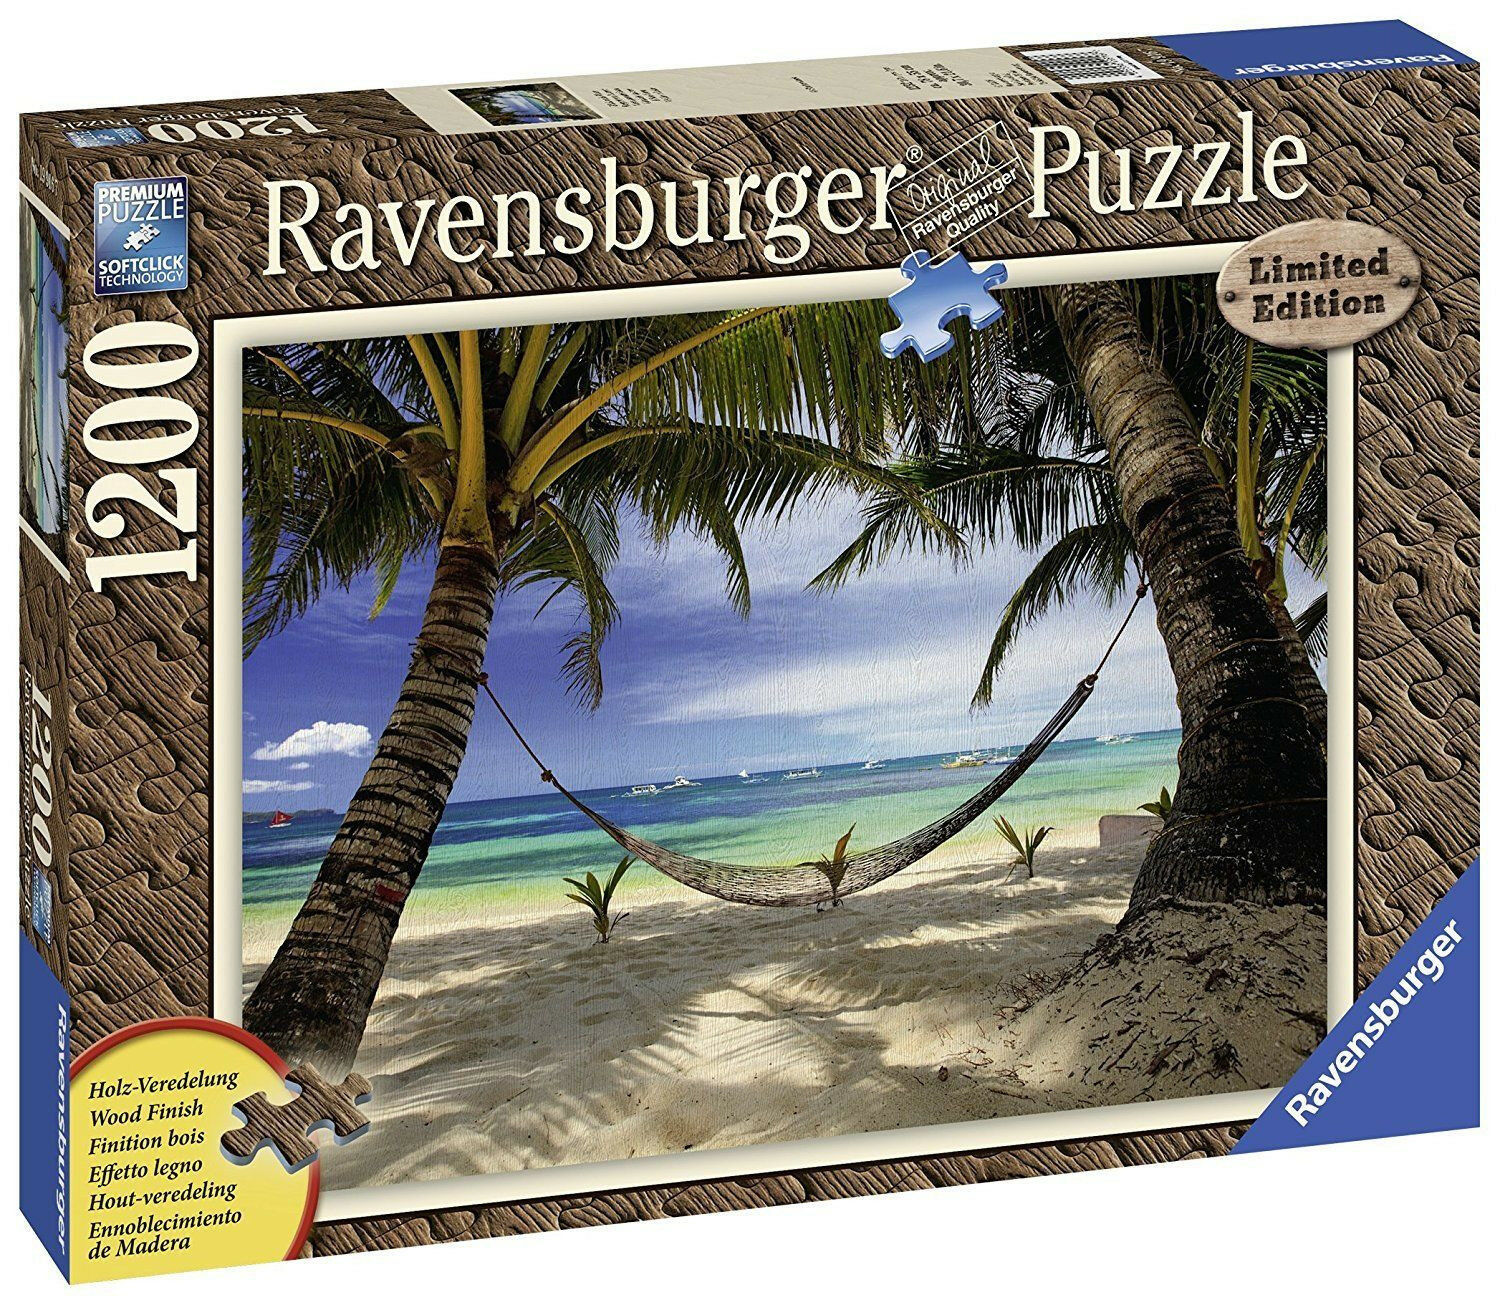 Ravensburger Limited Edition - Ocean View - 19916 - 1200 Pieces - Brand New